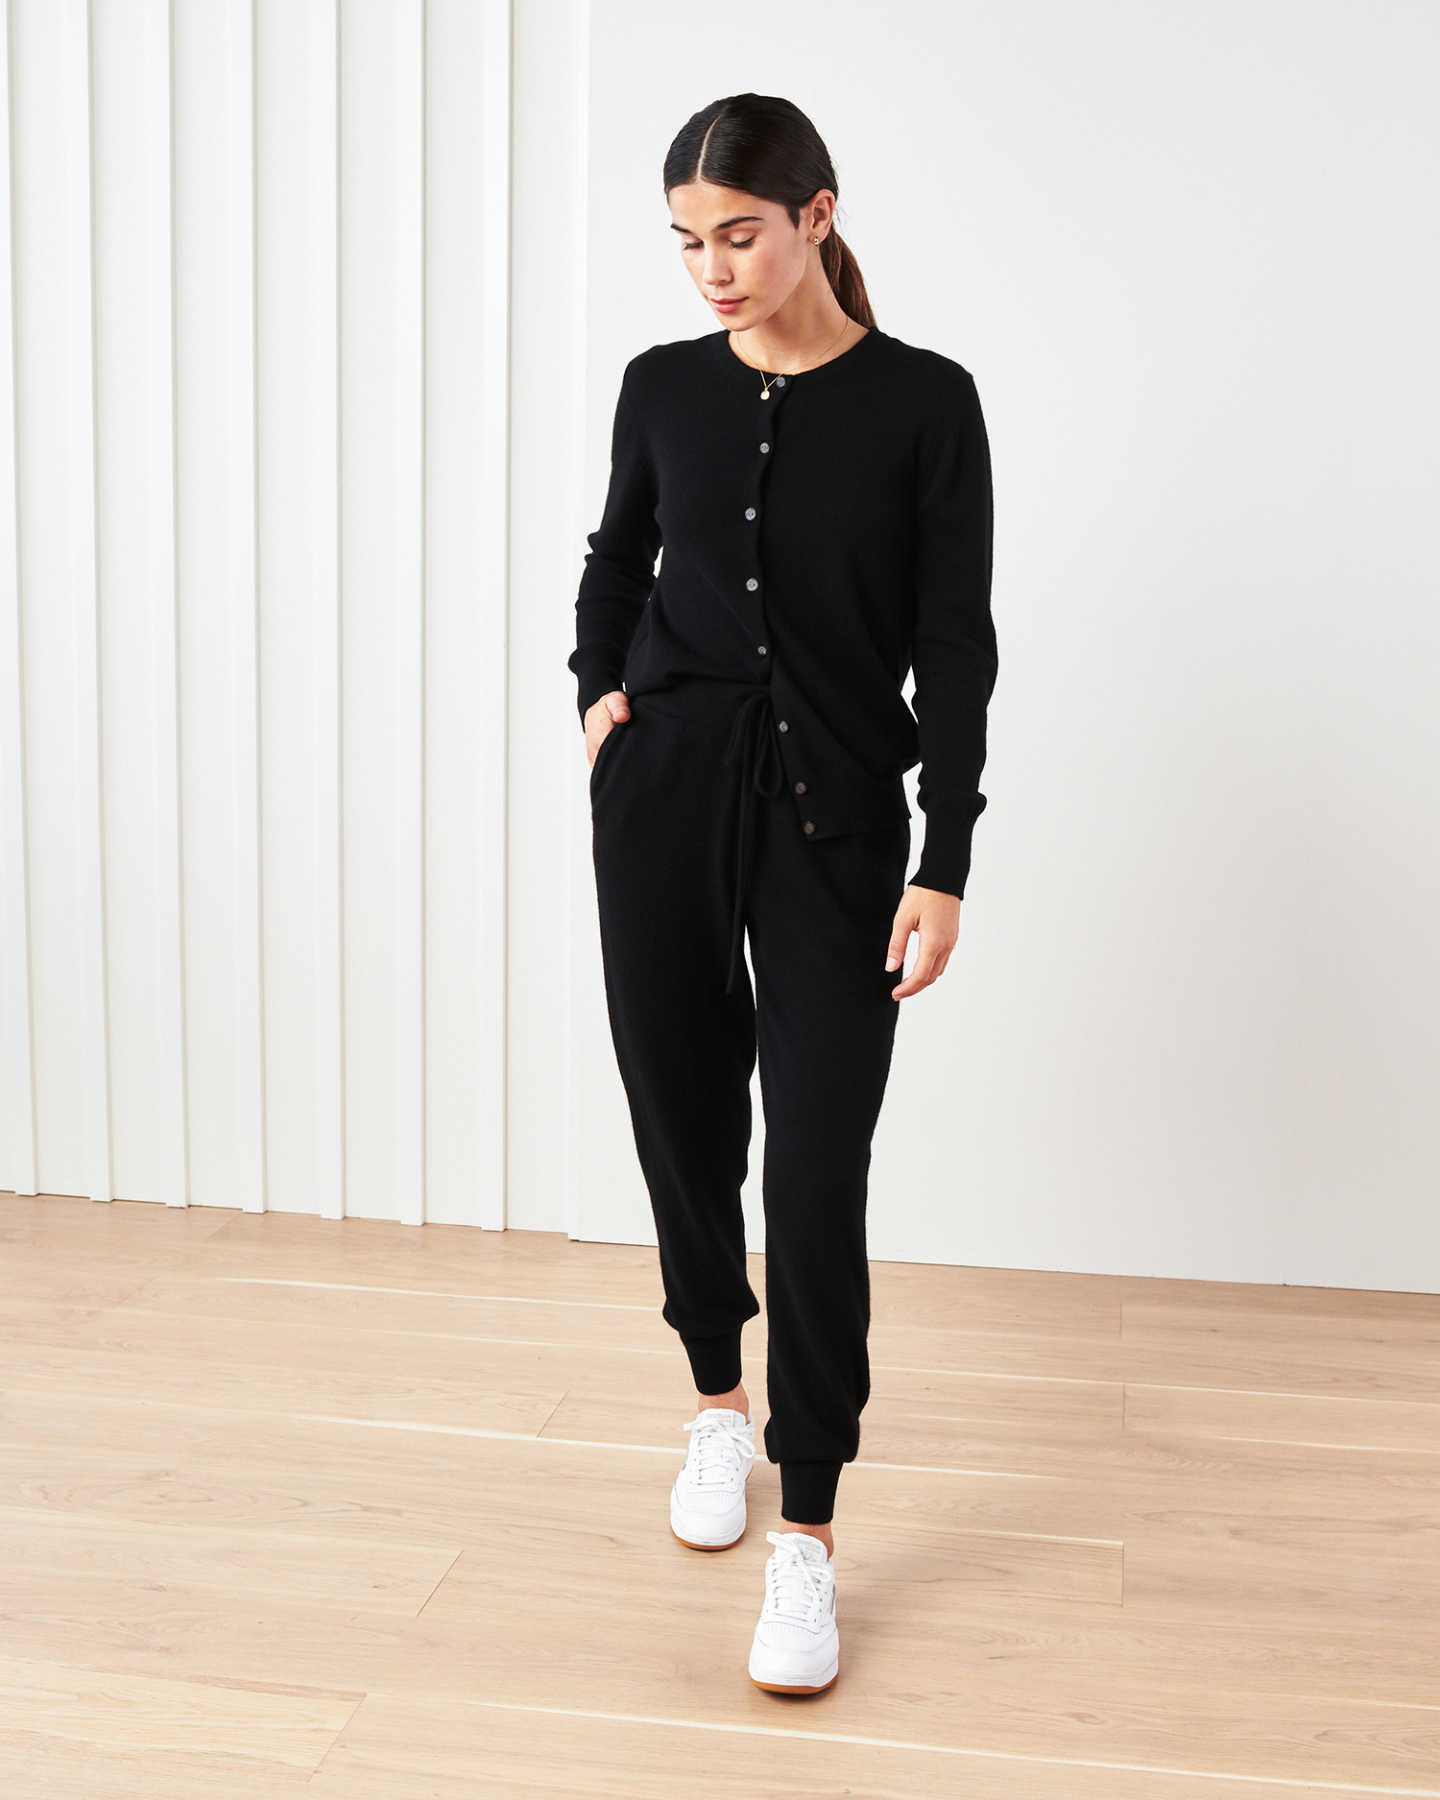 Woman wearing black cashmere cardigan sweater and black cashmere sweatpants striding